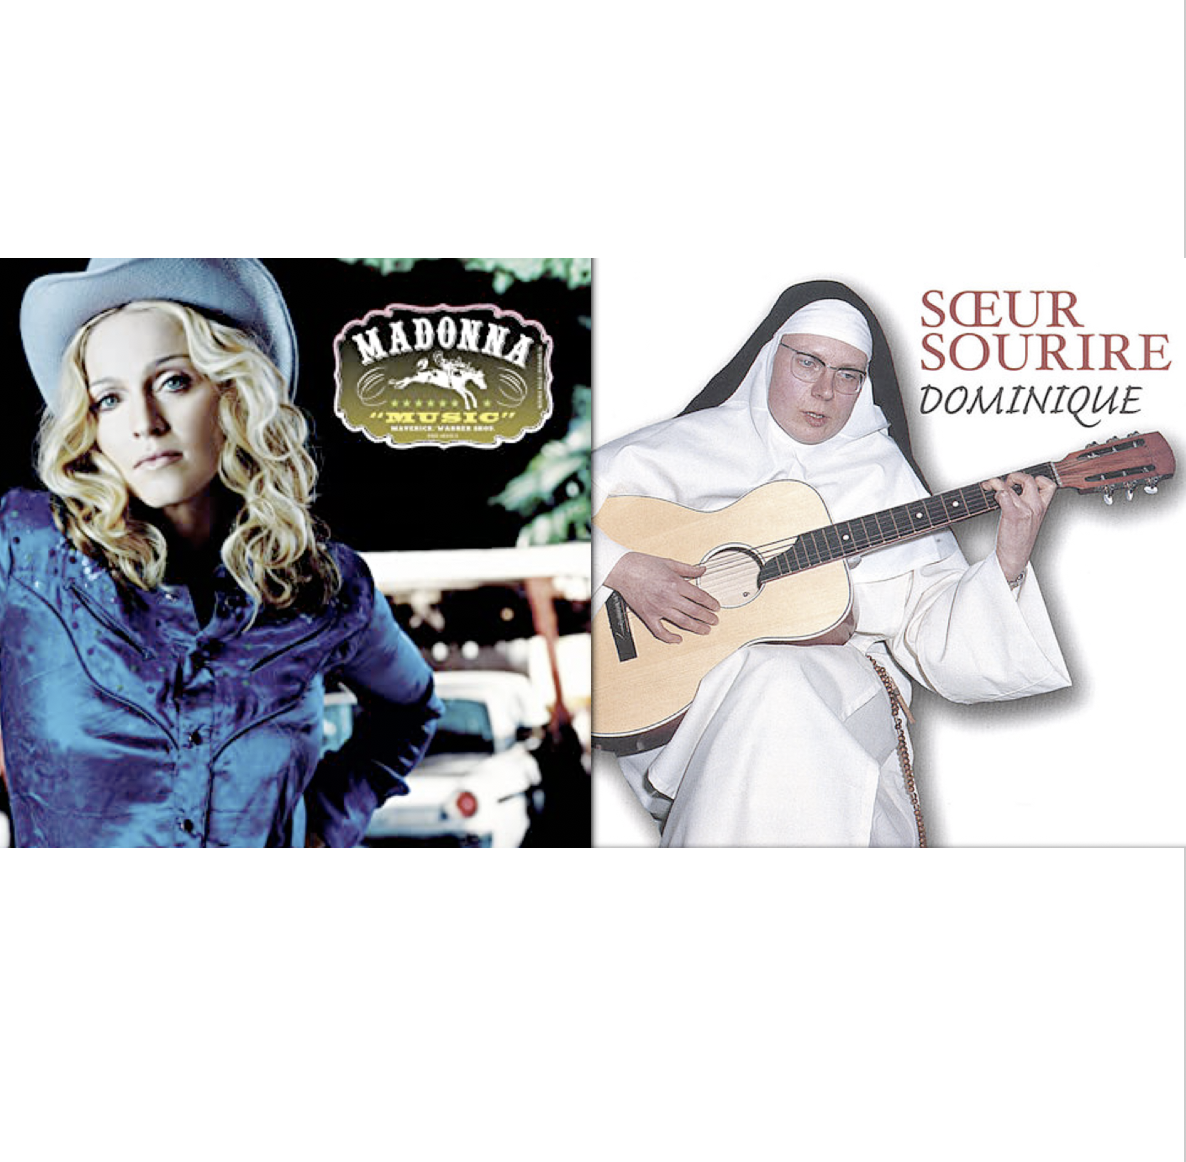 MADONNA - SŒUR SOURIRE (THE SINGING NUN)   Domusic (mashup by DoM)